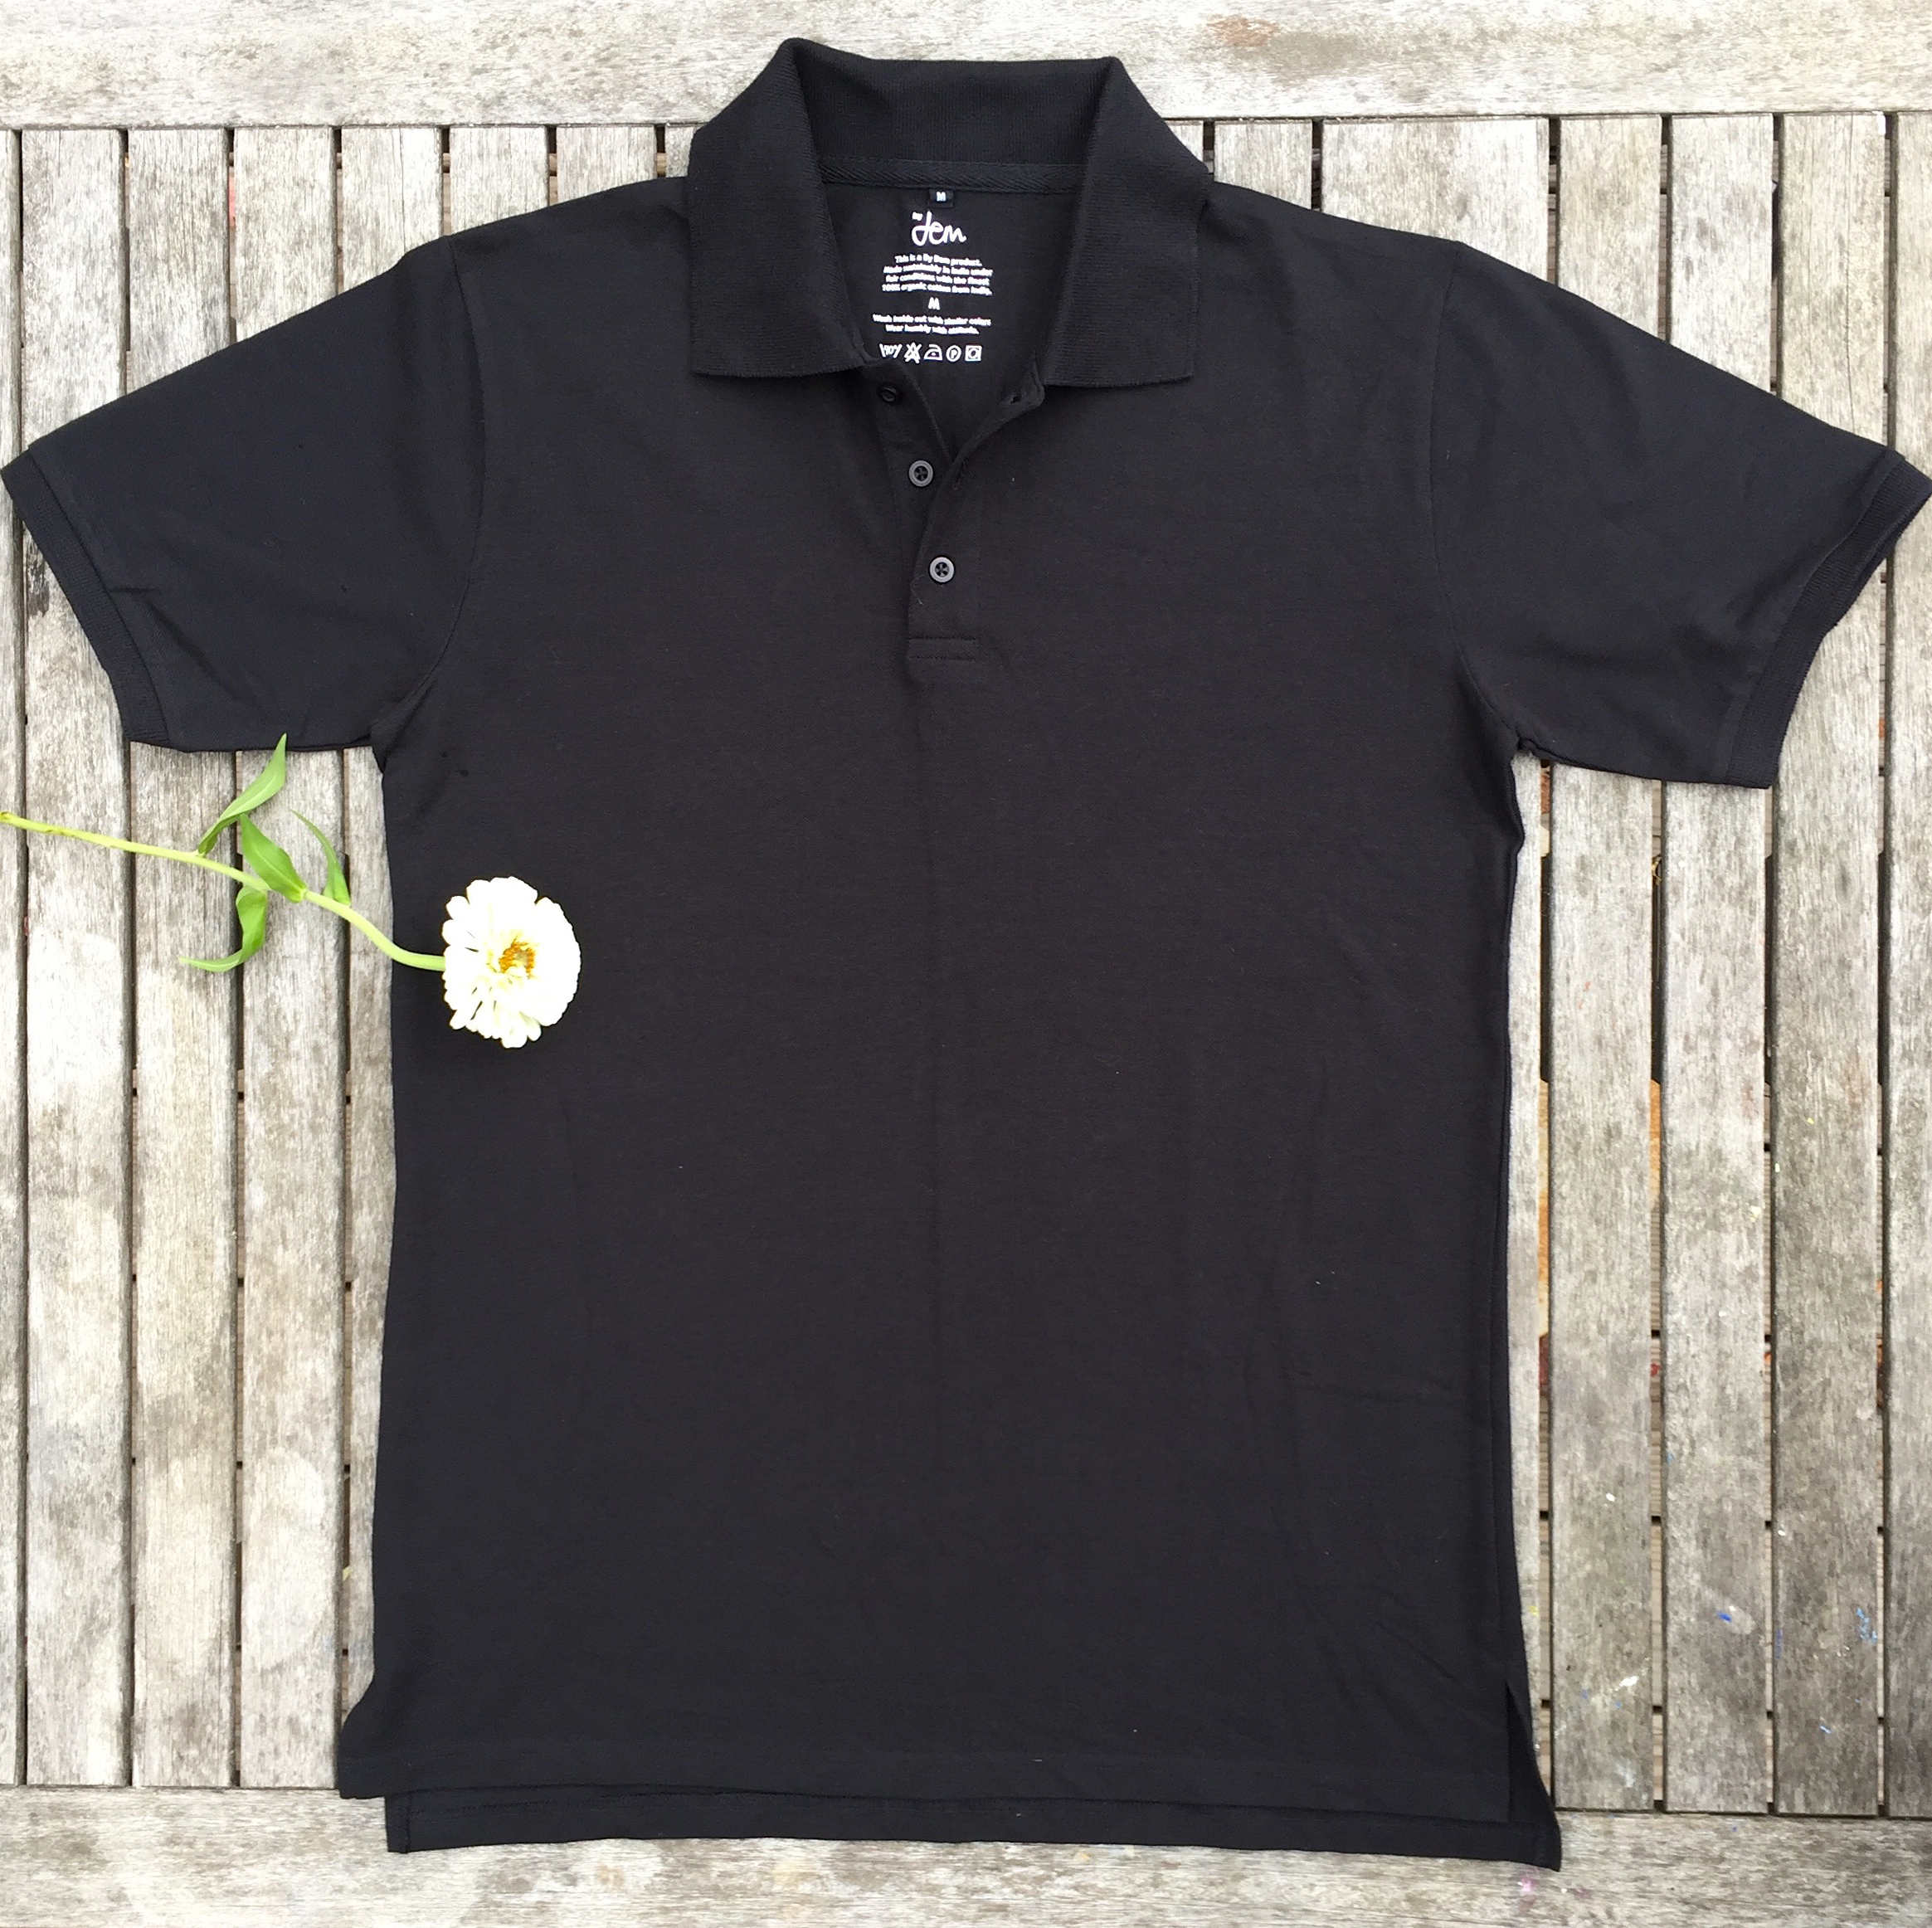 POLOS IN BLACK OR WHITE